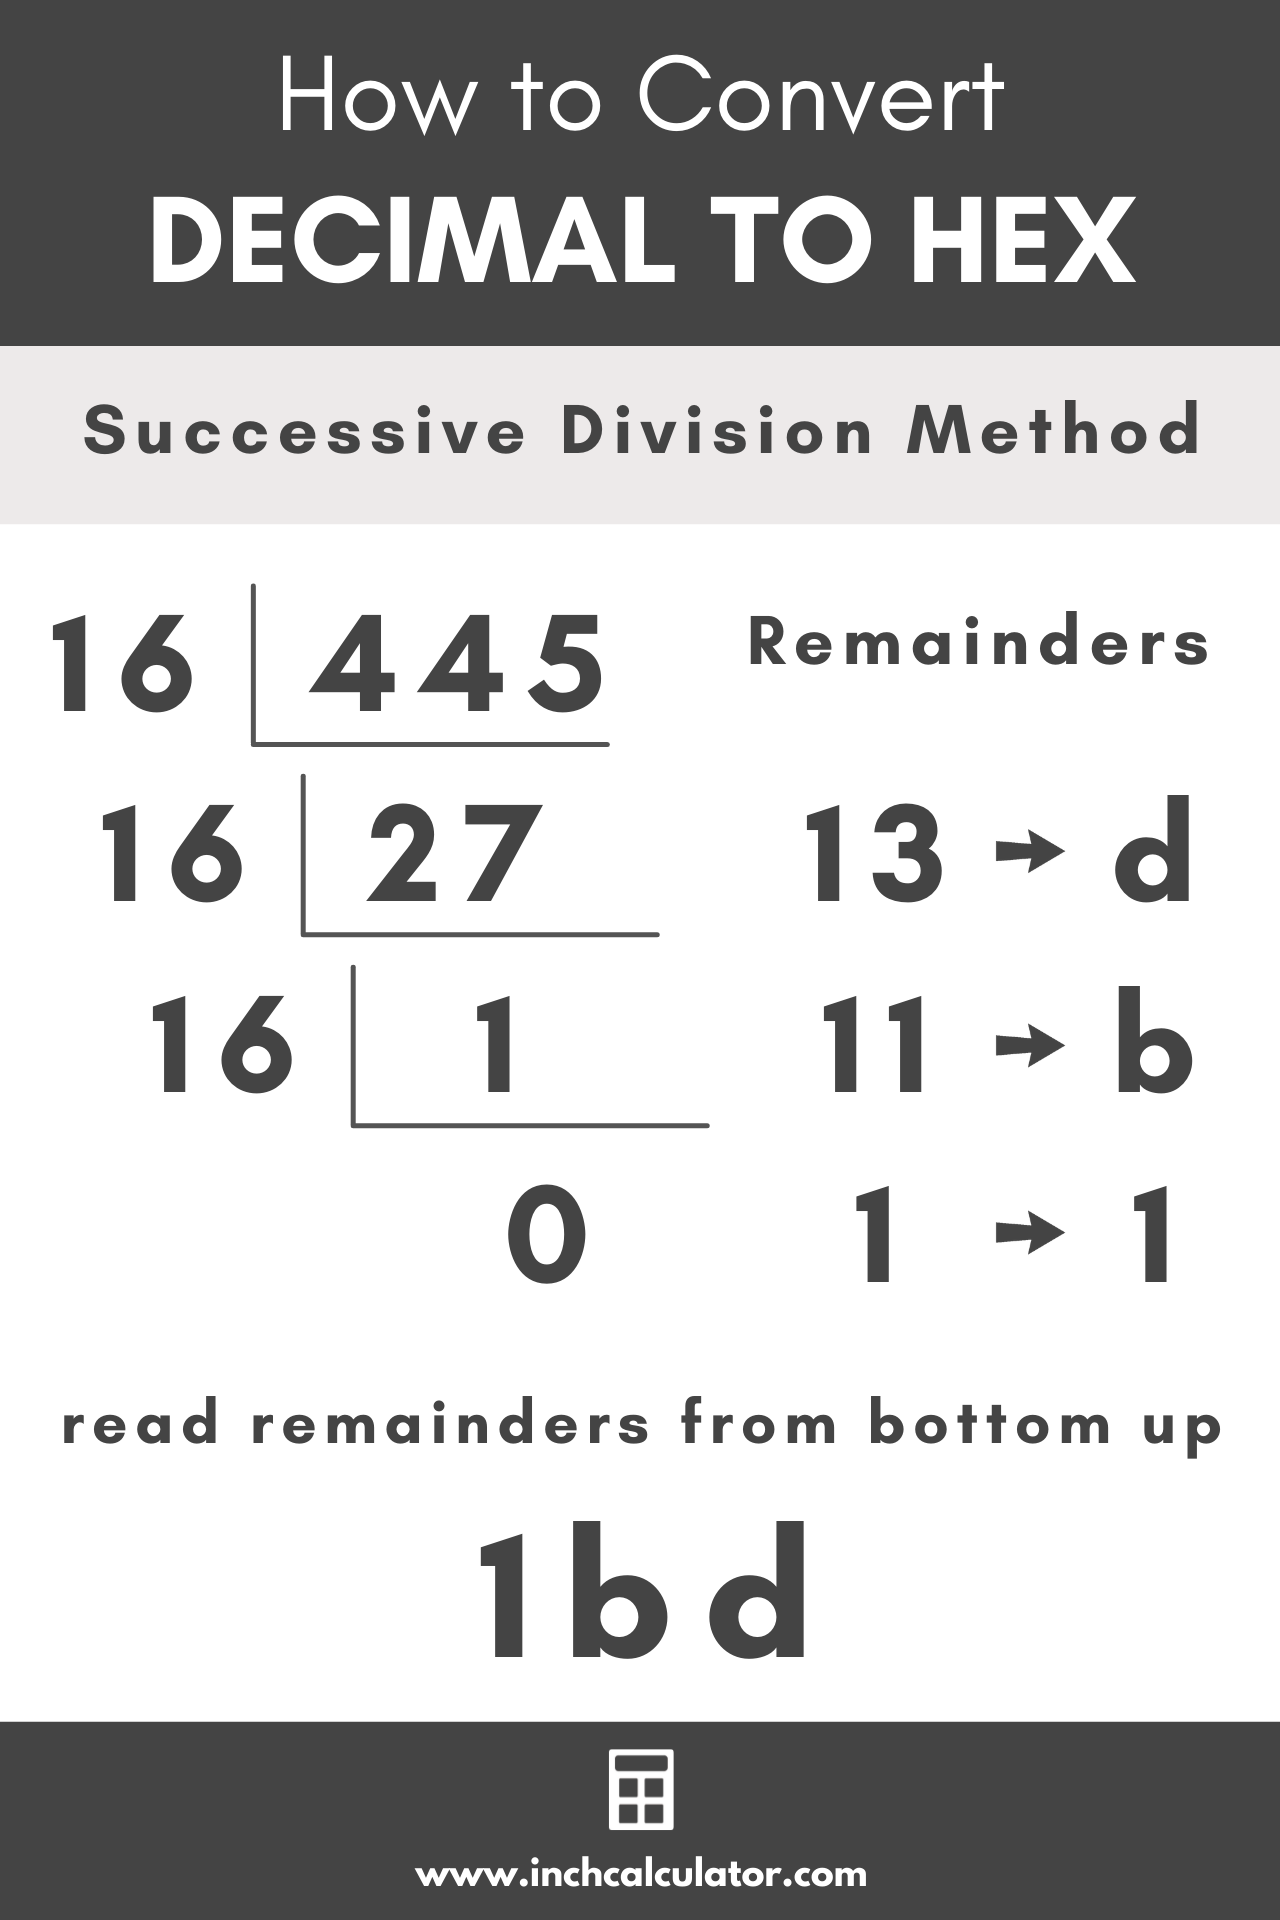 graphic showing how to convert a decimal number to hex